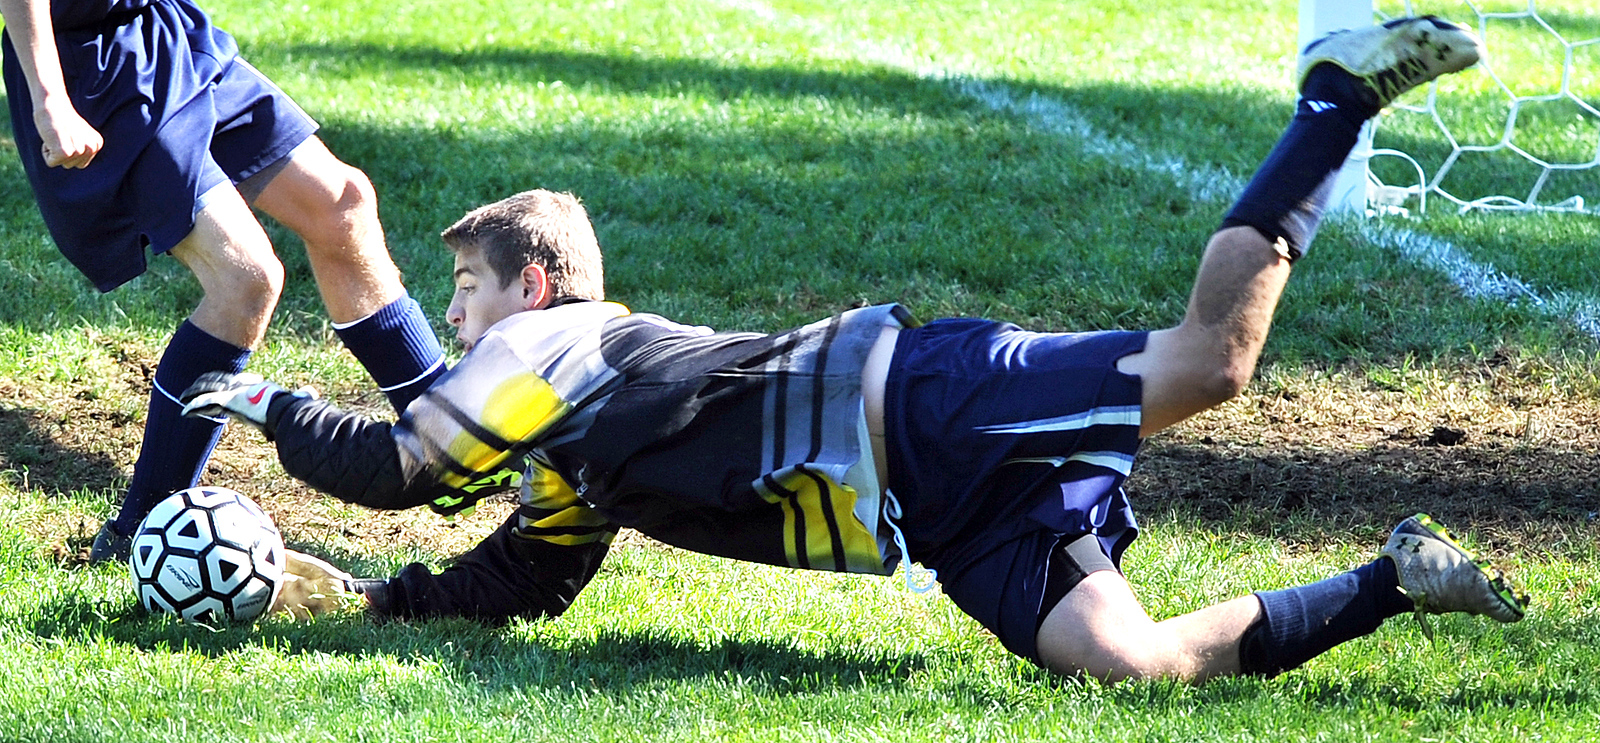 Telstar goalie Rick James dives to cover up the ball during a scramble in front of his net Saturday morning during a boys varsity soccer game against Saint Dominic Academy in Auburn.  Despite a great effort by James, the Saint Dominic team dominated the game and went on to a 7-0 victory.